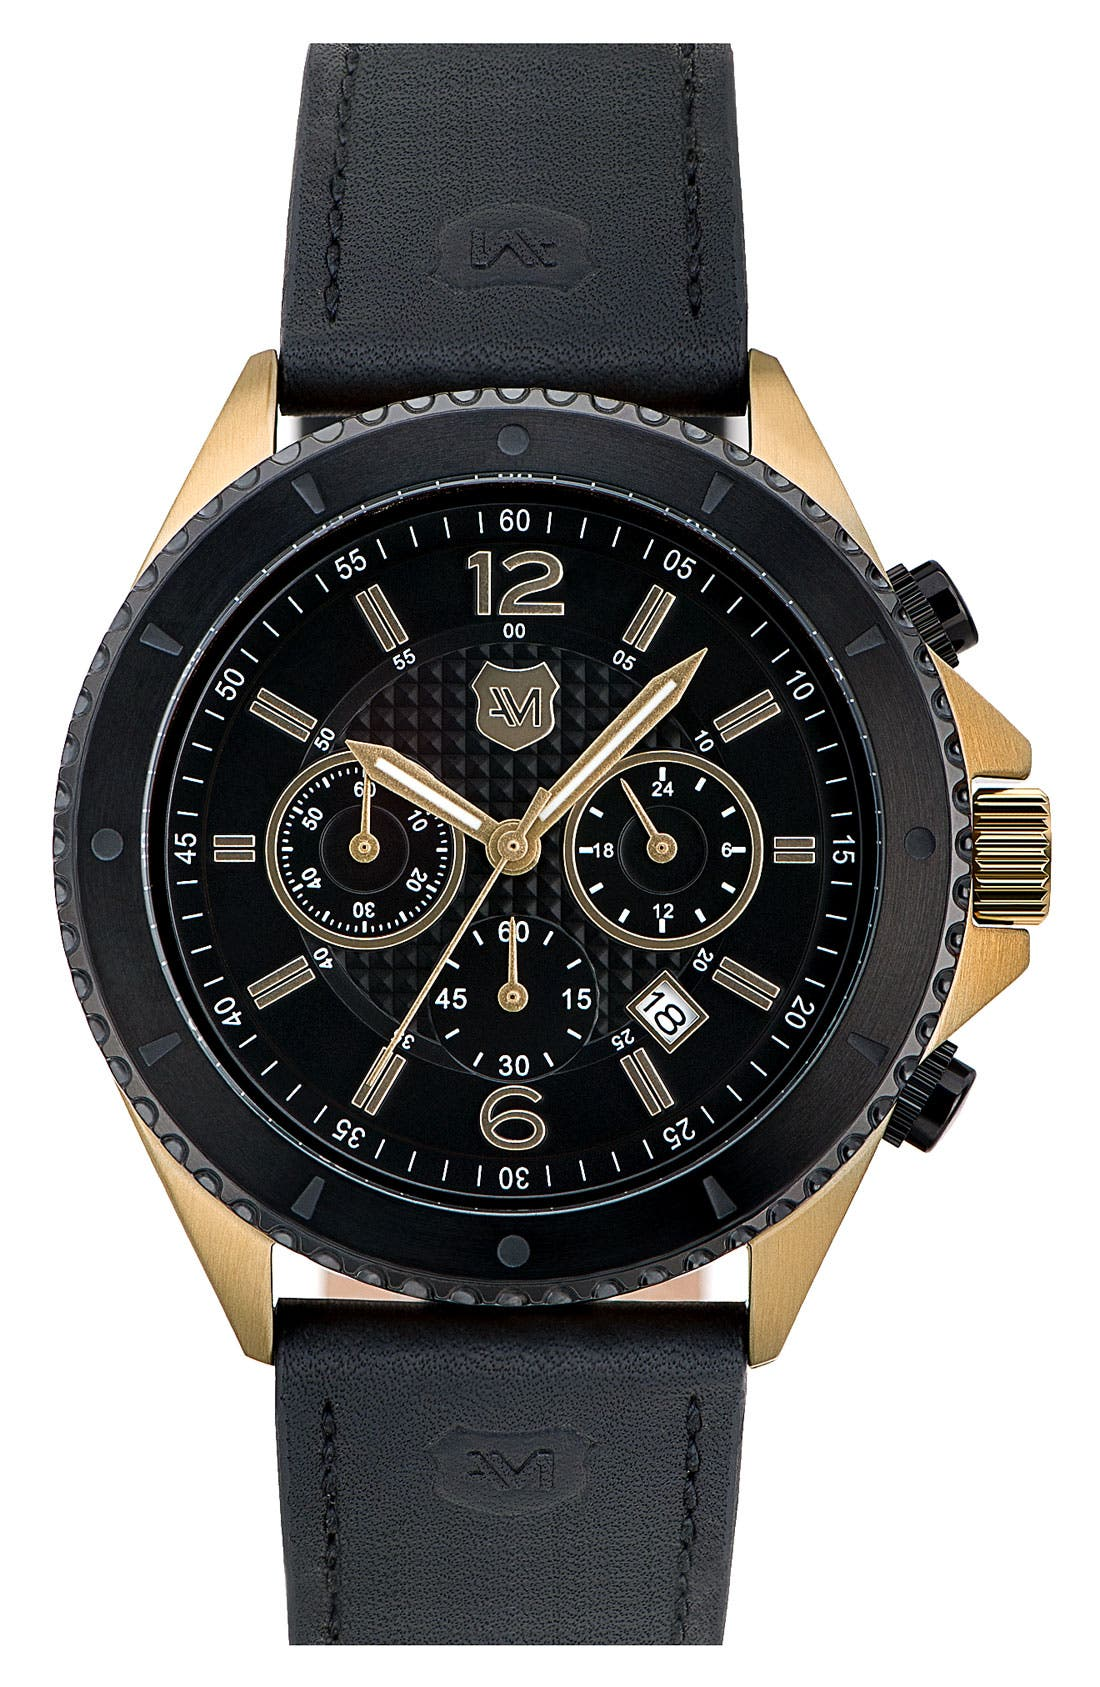 Main Image - Andrew Marc Watches 'Club Cadet' Chronograph Watch